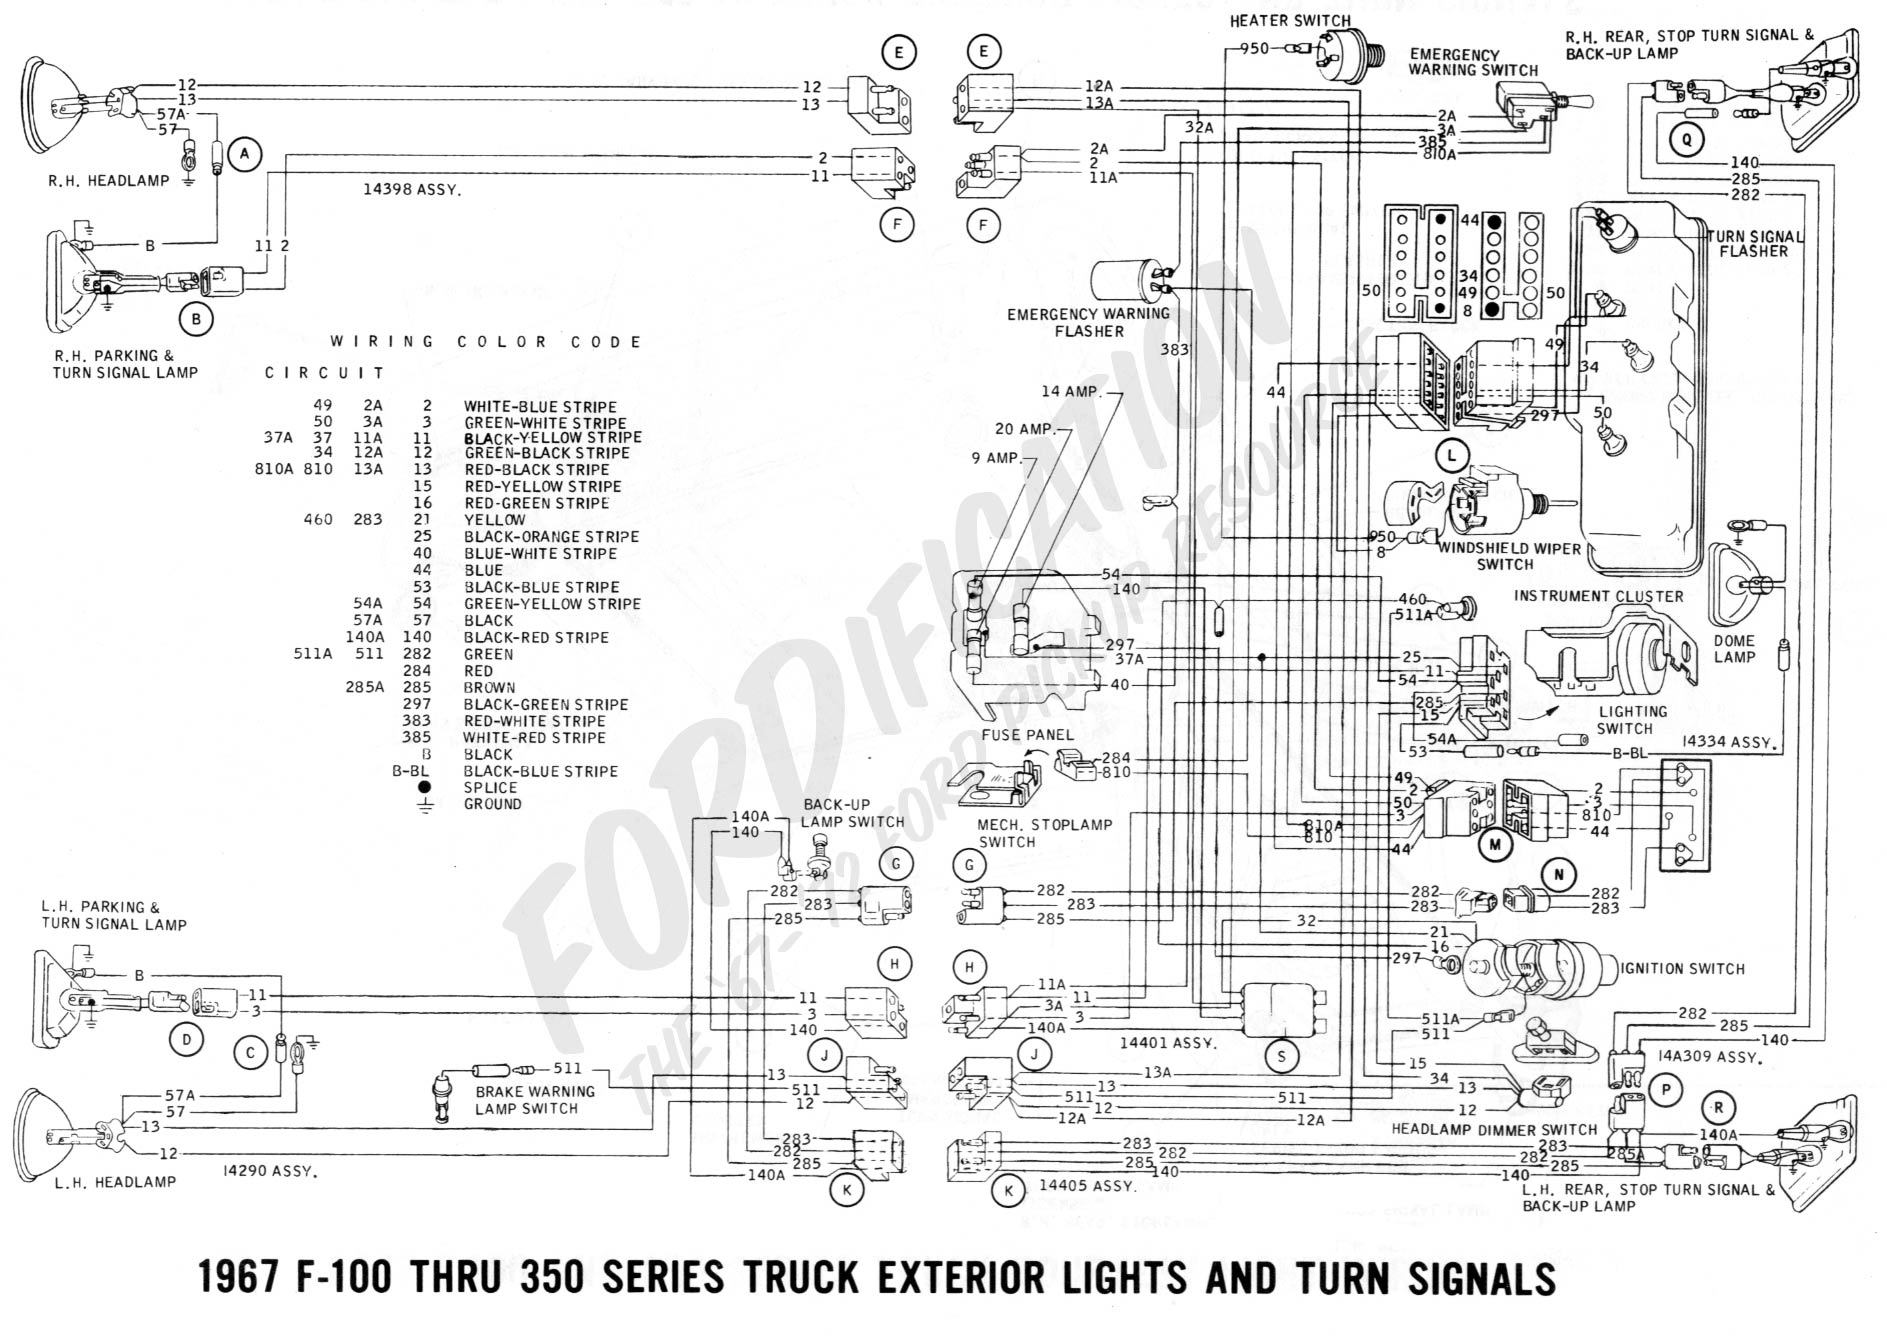 80 1967_exterior_lights_and_turn_signals_page_2_1db6c529c4c9567560e56d6320f993290ba5b803 1967 mustang wiring diagram efcaviation com 66 mustang alternator wiring diagram at couponss.co